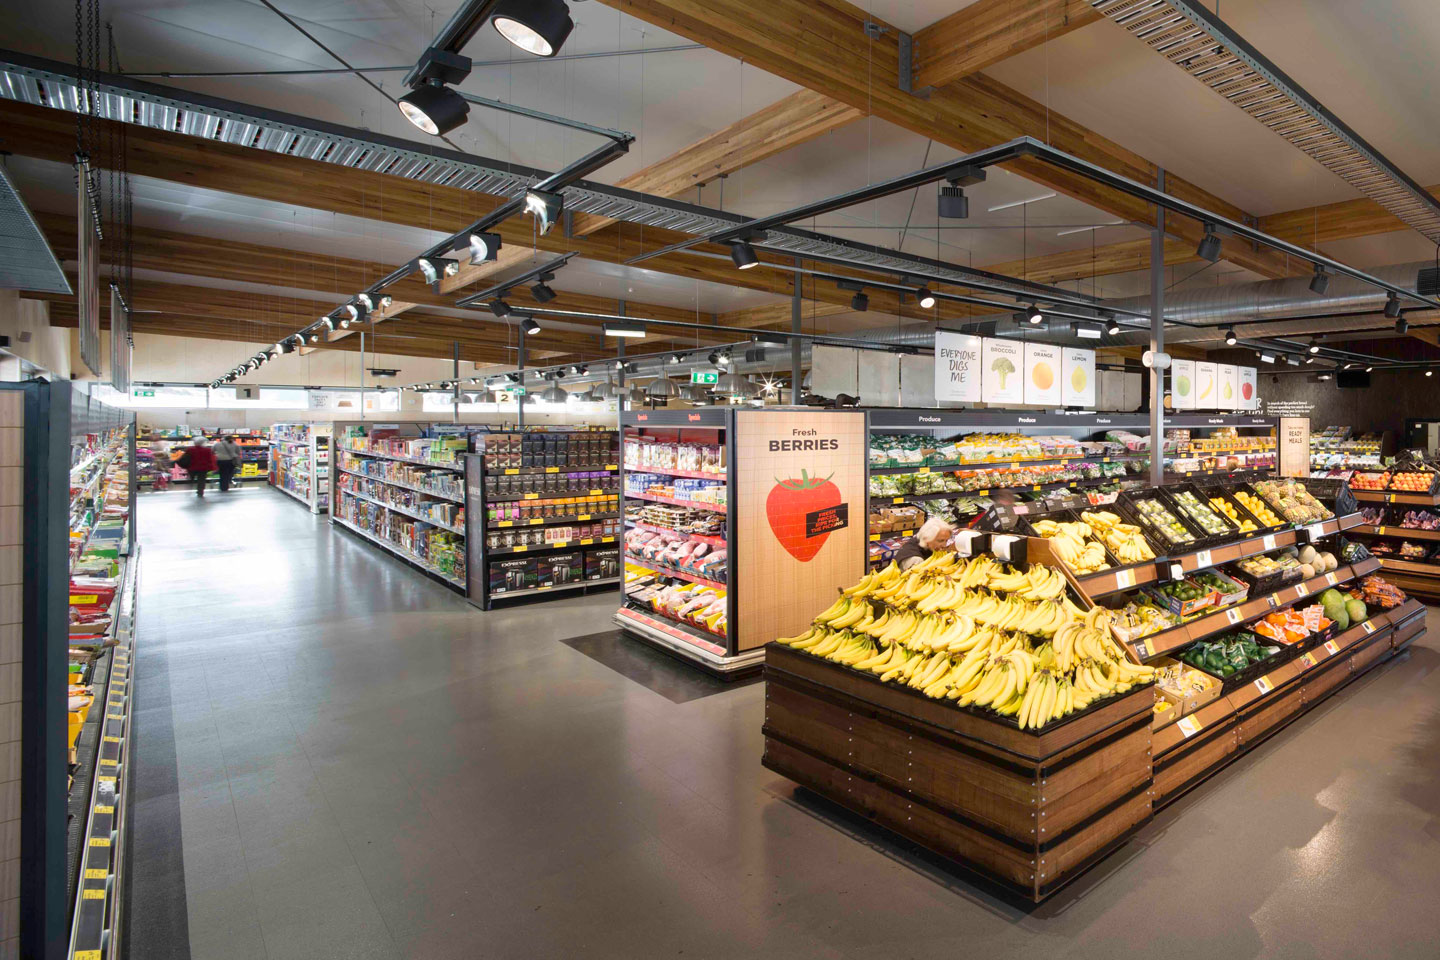 Aldi Food Store Products